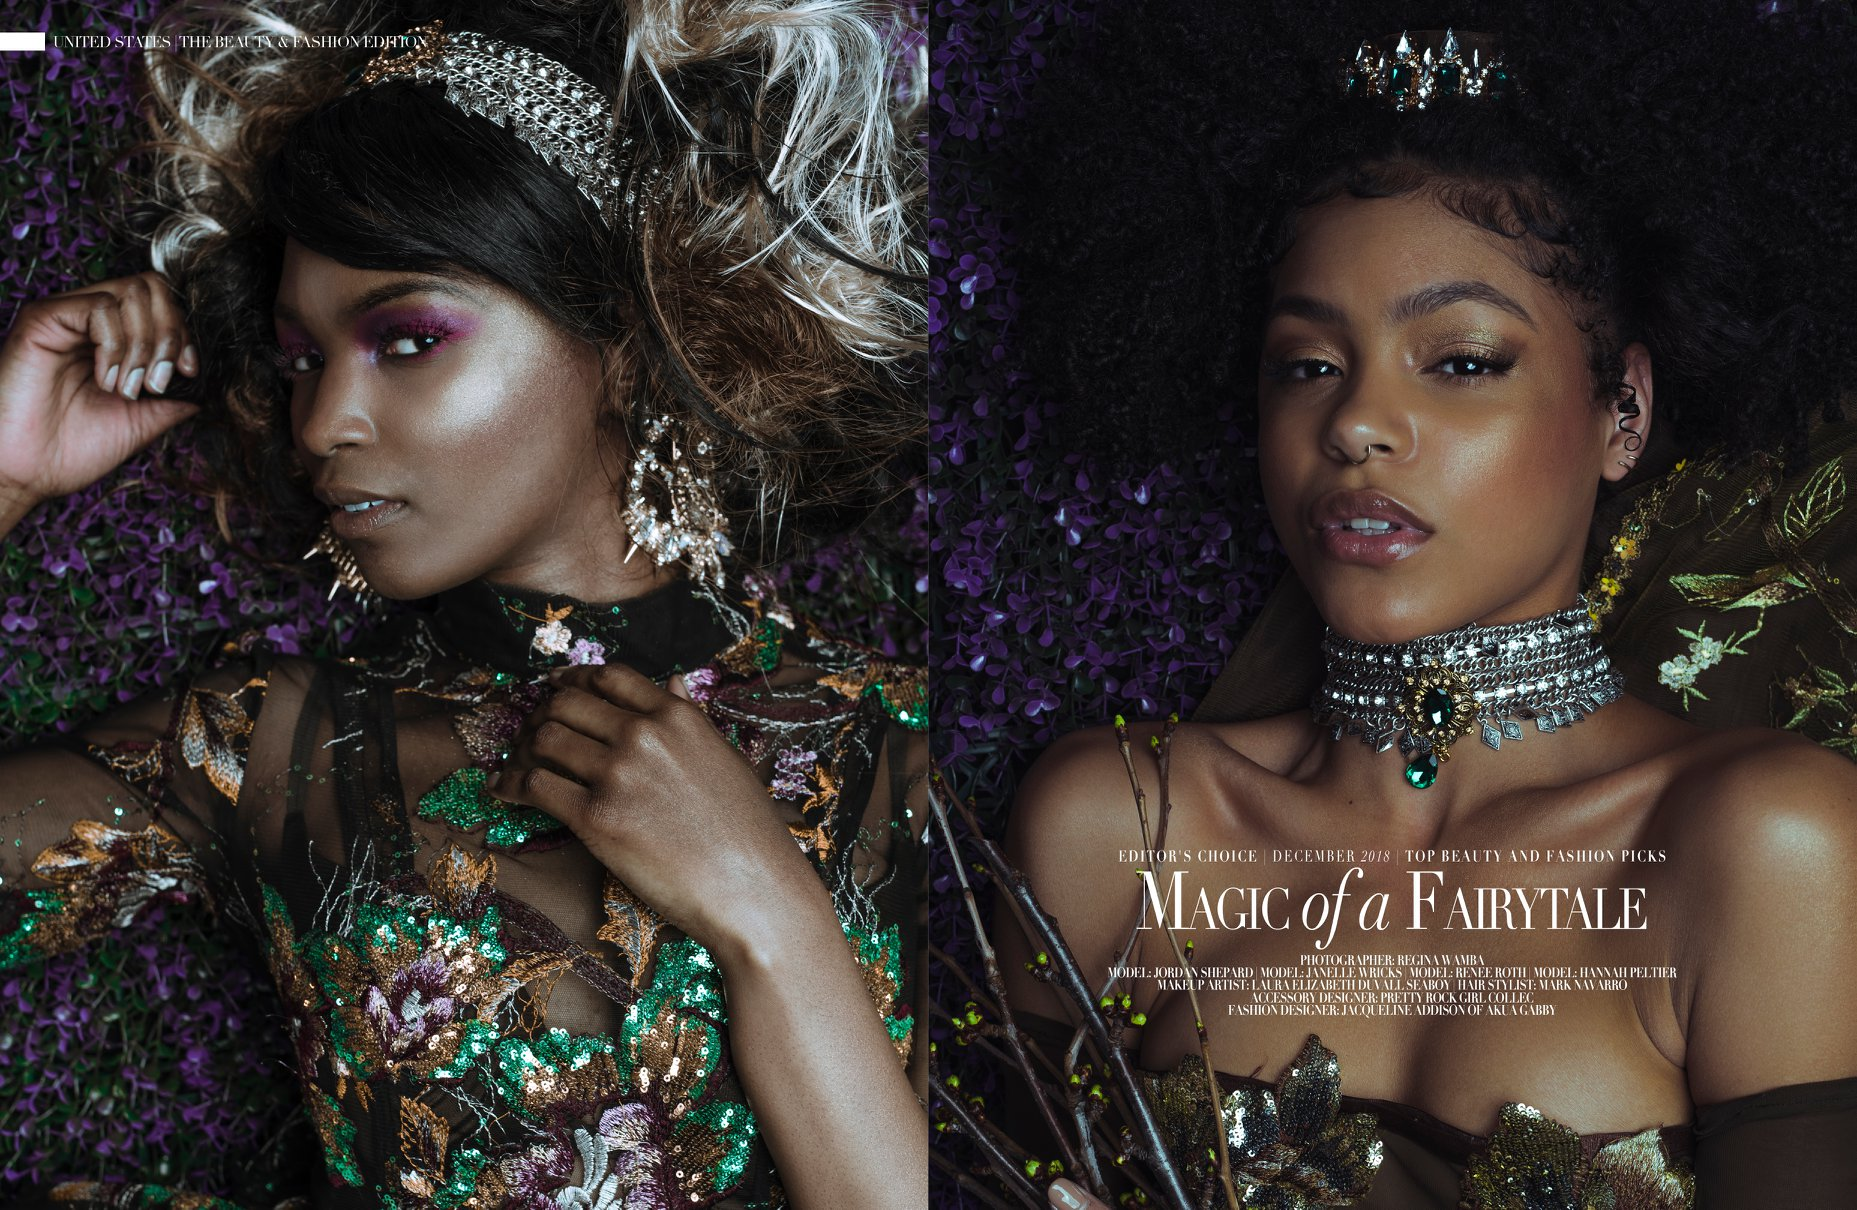 Published in PUMP Magazine December 2018  Photographer: Artist Regina Wamba Makeup: Laura Elizabeth DuVall Seaboy Hair: Mark Navarro Hair & Makeup Gowns: Jacqueline Amissah Addison Accessories: Zong Xiong  Models: Janelle Wricks and Jordan Shepard